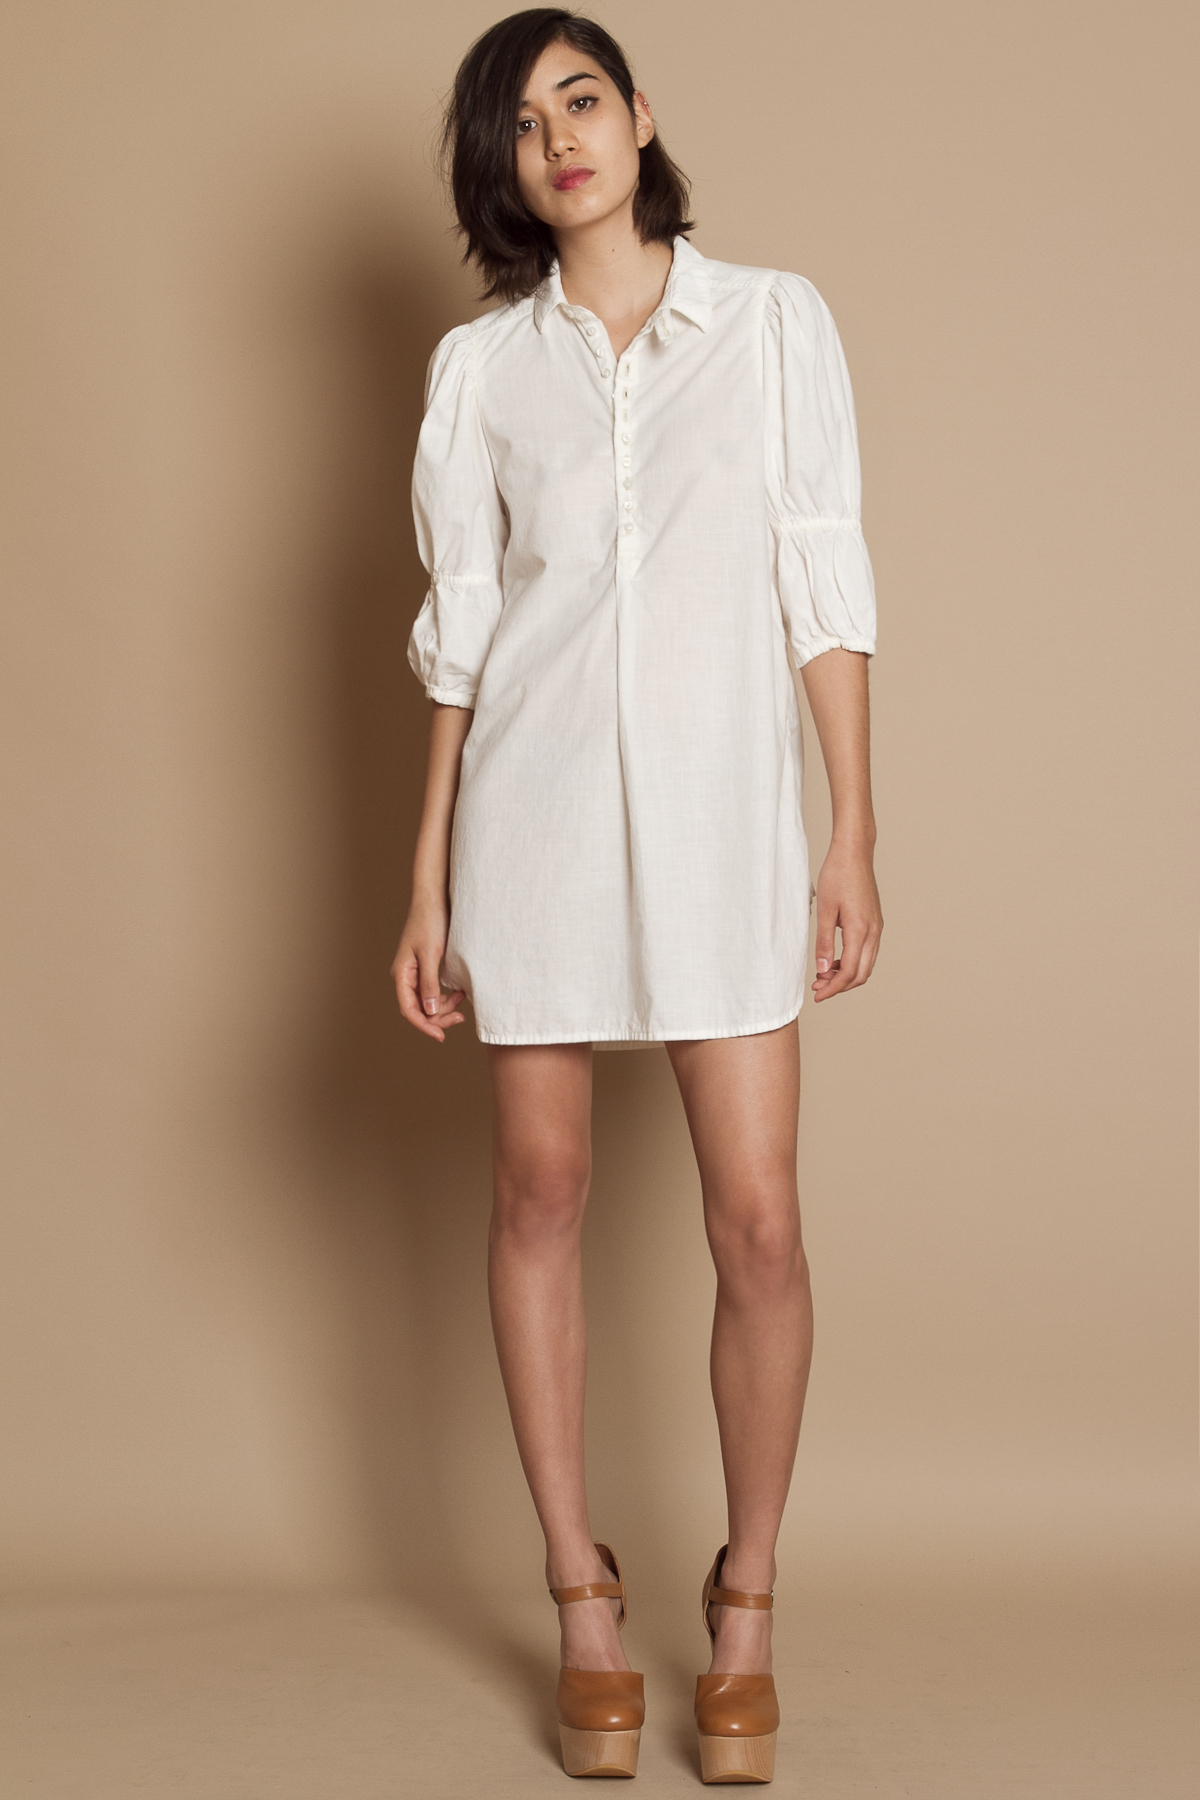 Browse our range of shirt dresses at Debenhams from casual denim styles to sophisticated white & blacks, taking you from day to evening chic in no time.